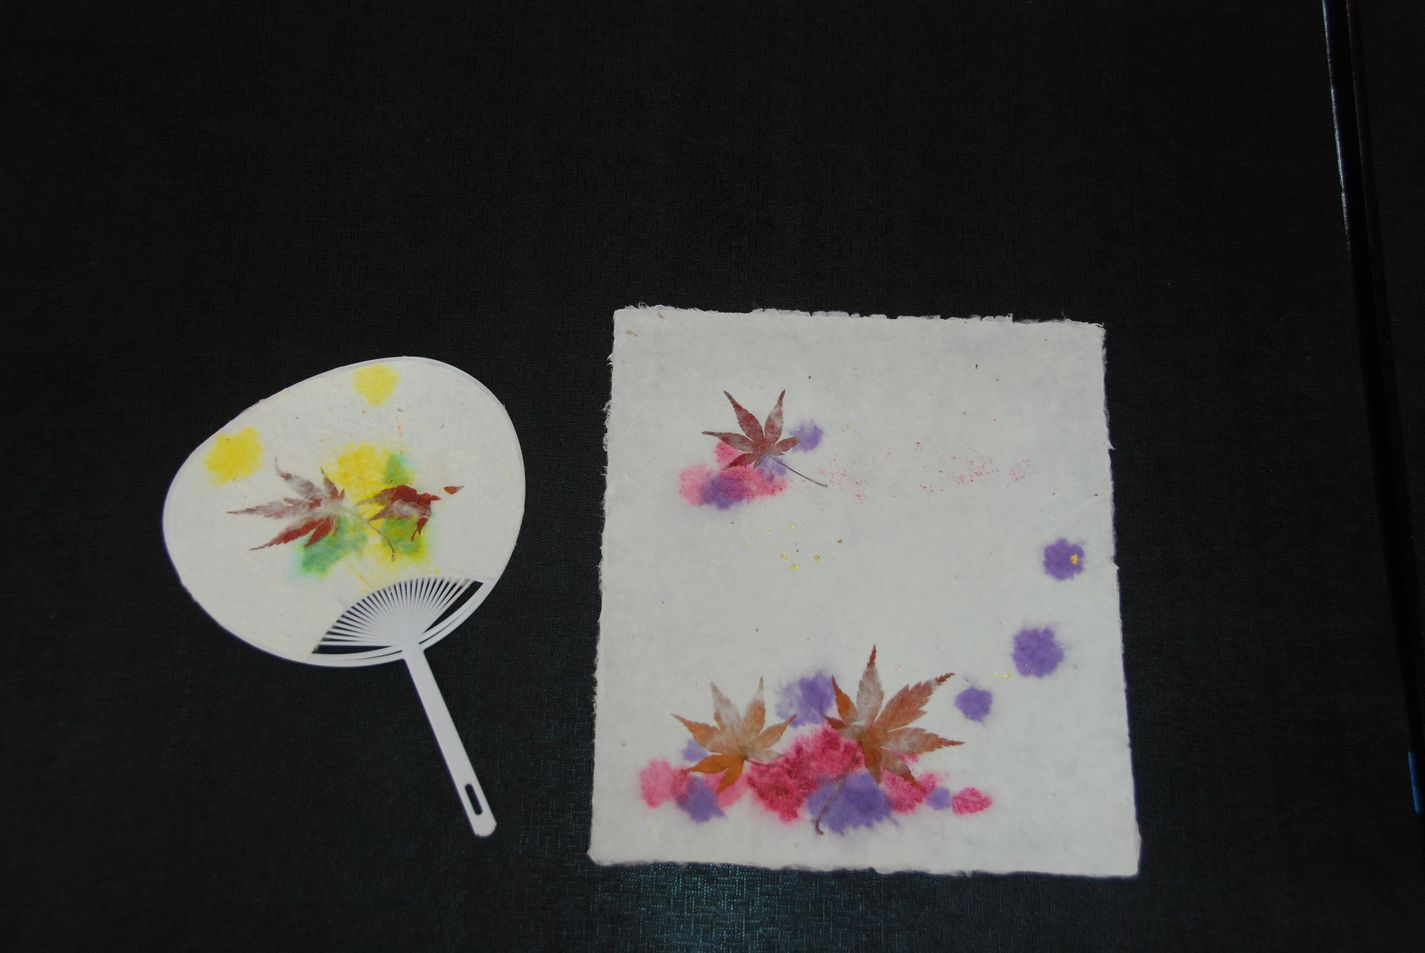 Workshop for paper-making